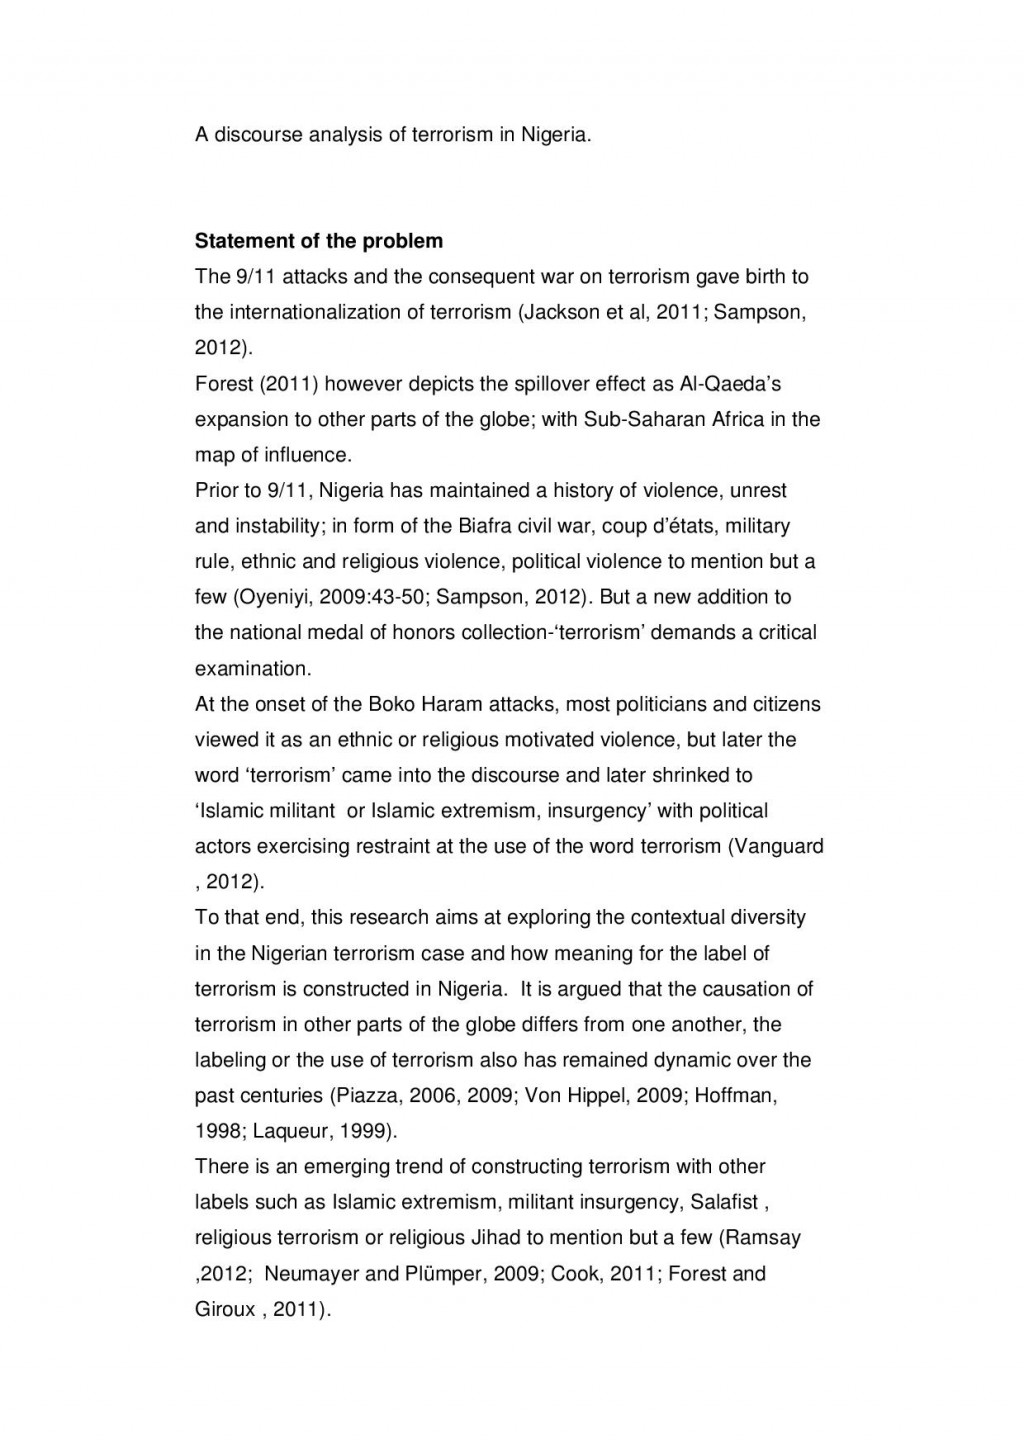 007 Essay Example Proposal Terrorism Page Top Technology Writing Task 2 Prompts Mobile Large